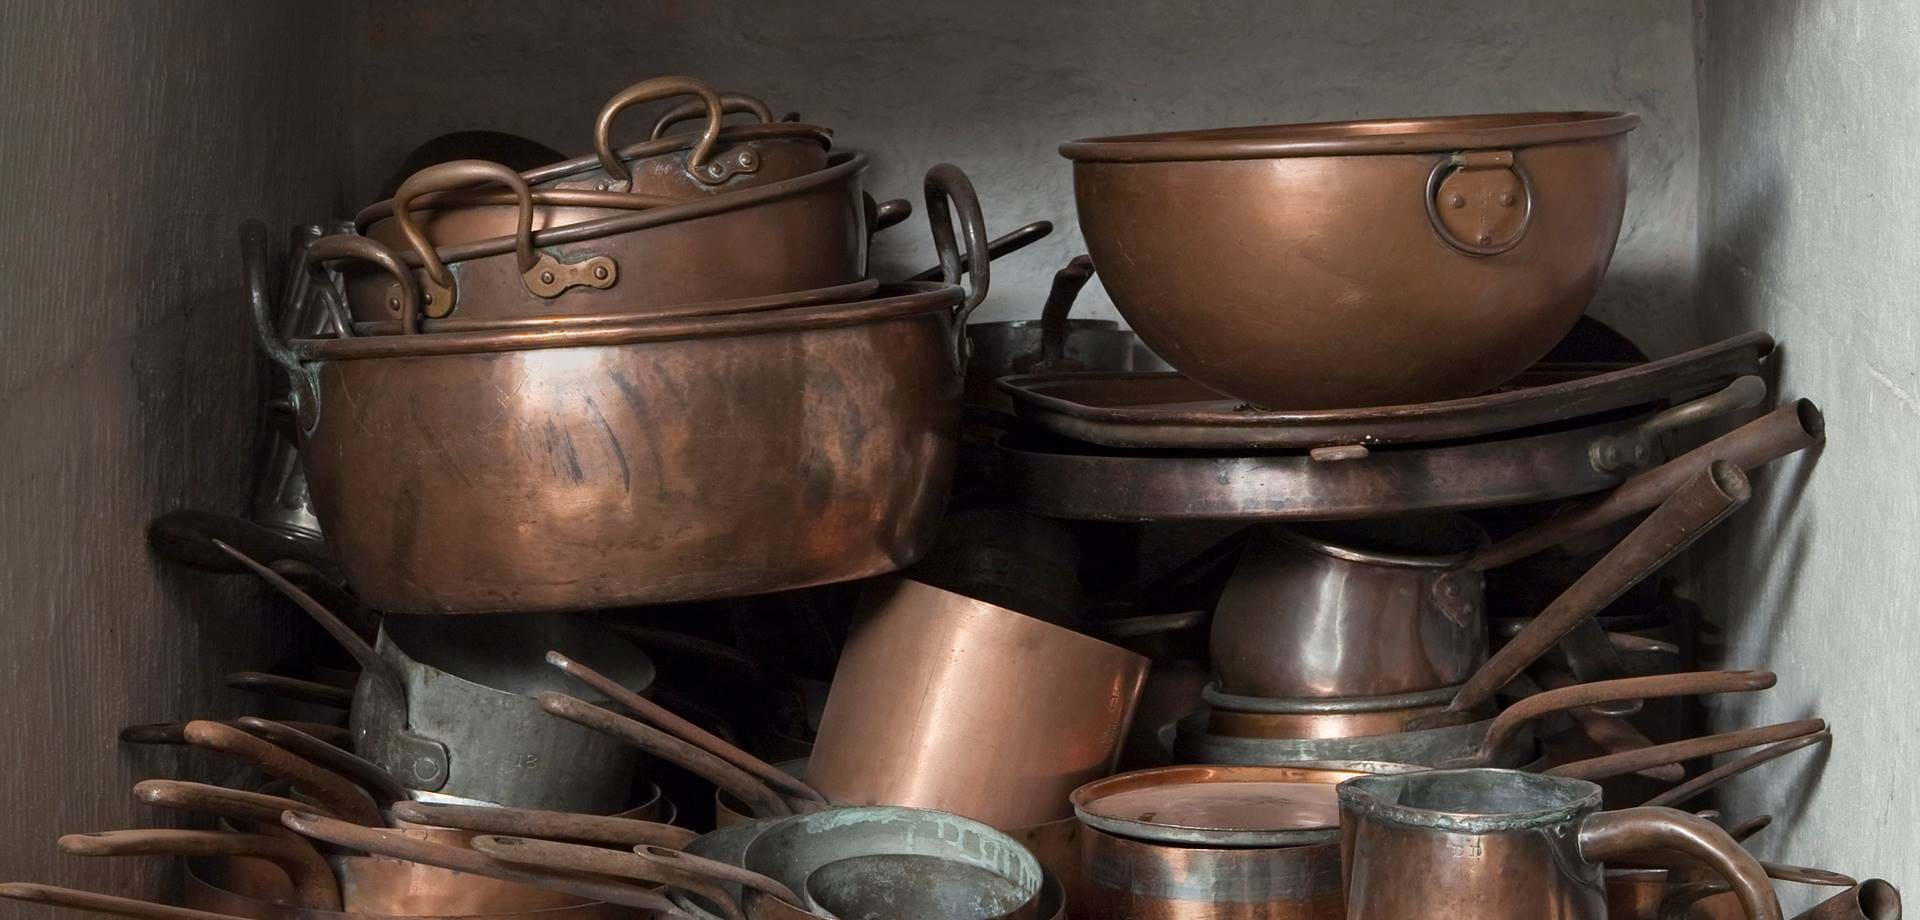 Copper cooking equipment and utensils